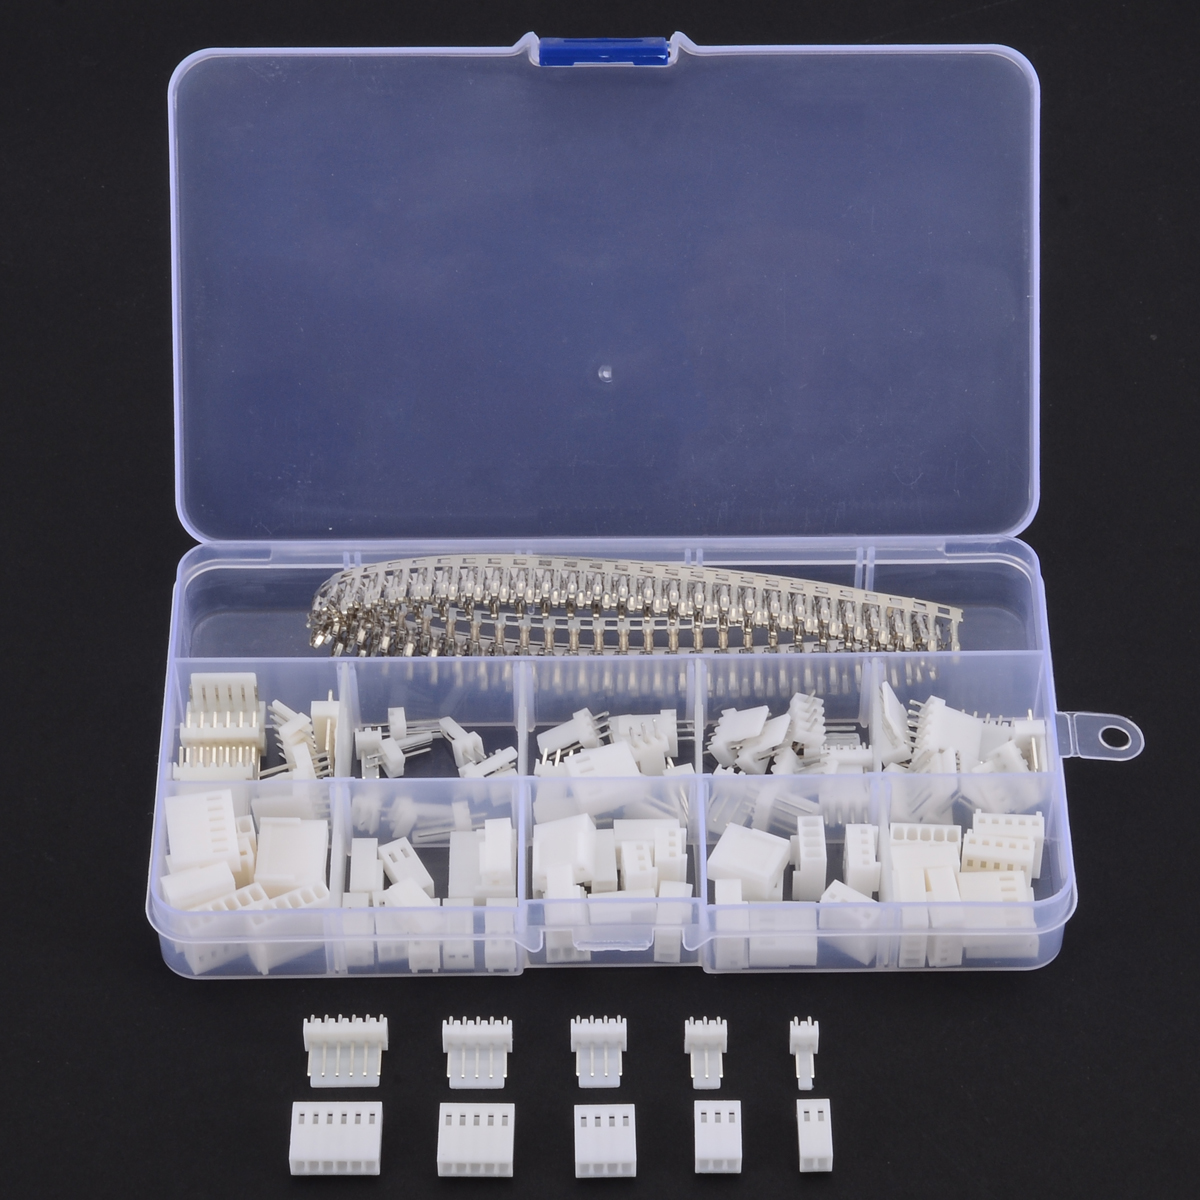 300pcs KF2510 2.54mm 2 3 4 5 6 Pin Female Terminal Housing Header Wire Connector Assortment Kit with Box